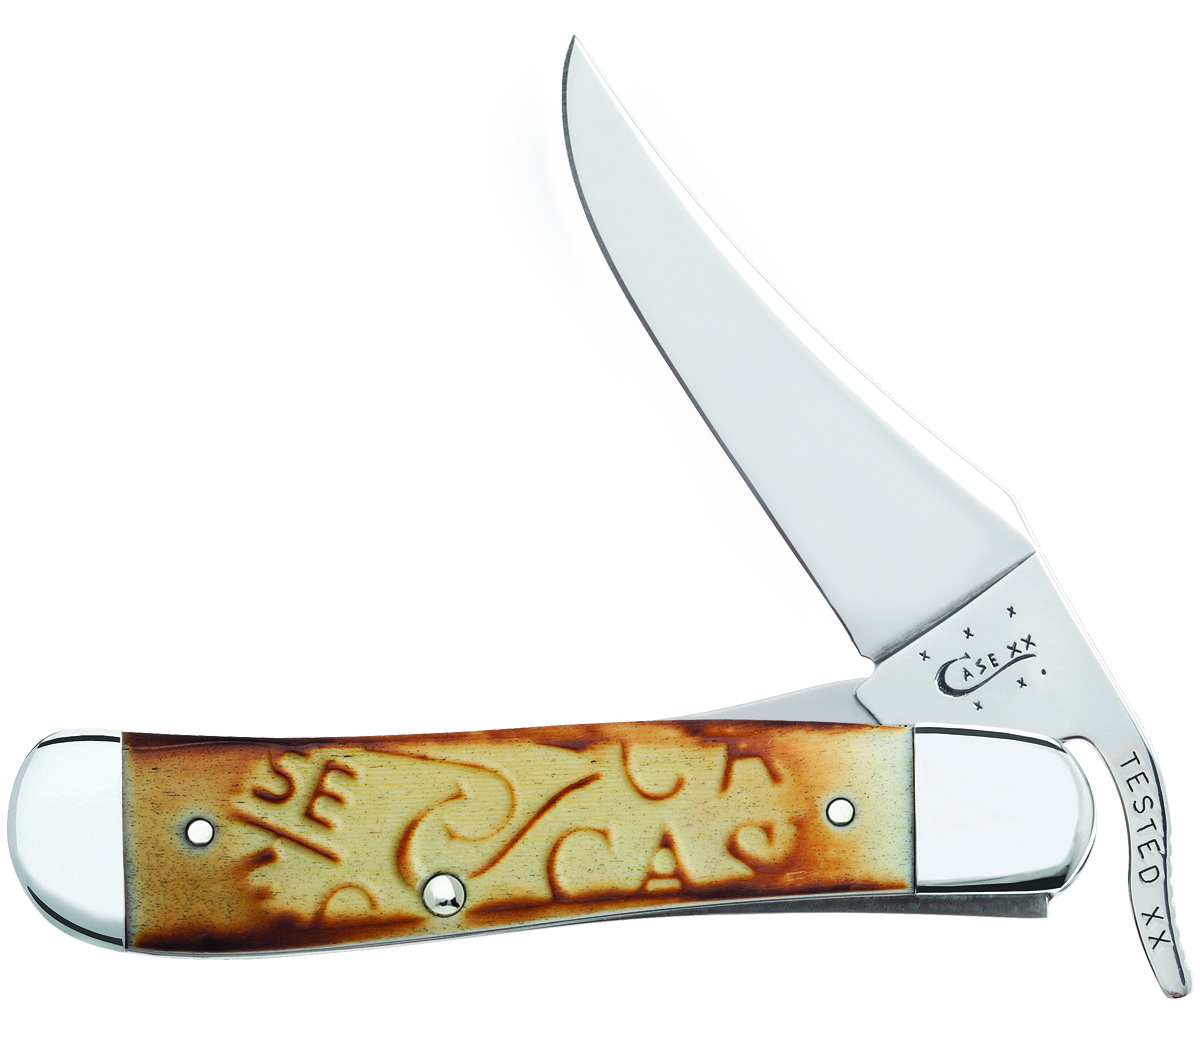 CASE XX KNIFE 31756 BURNT OATMEAL CARVED RUSSLOCK